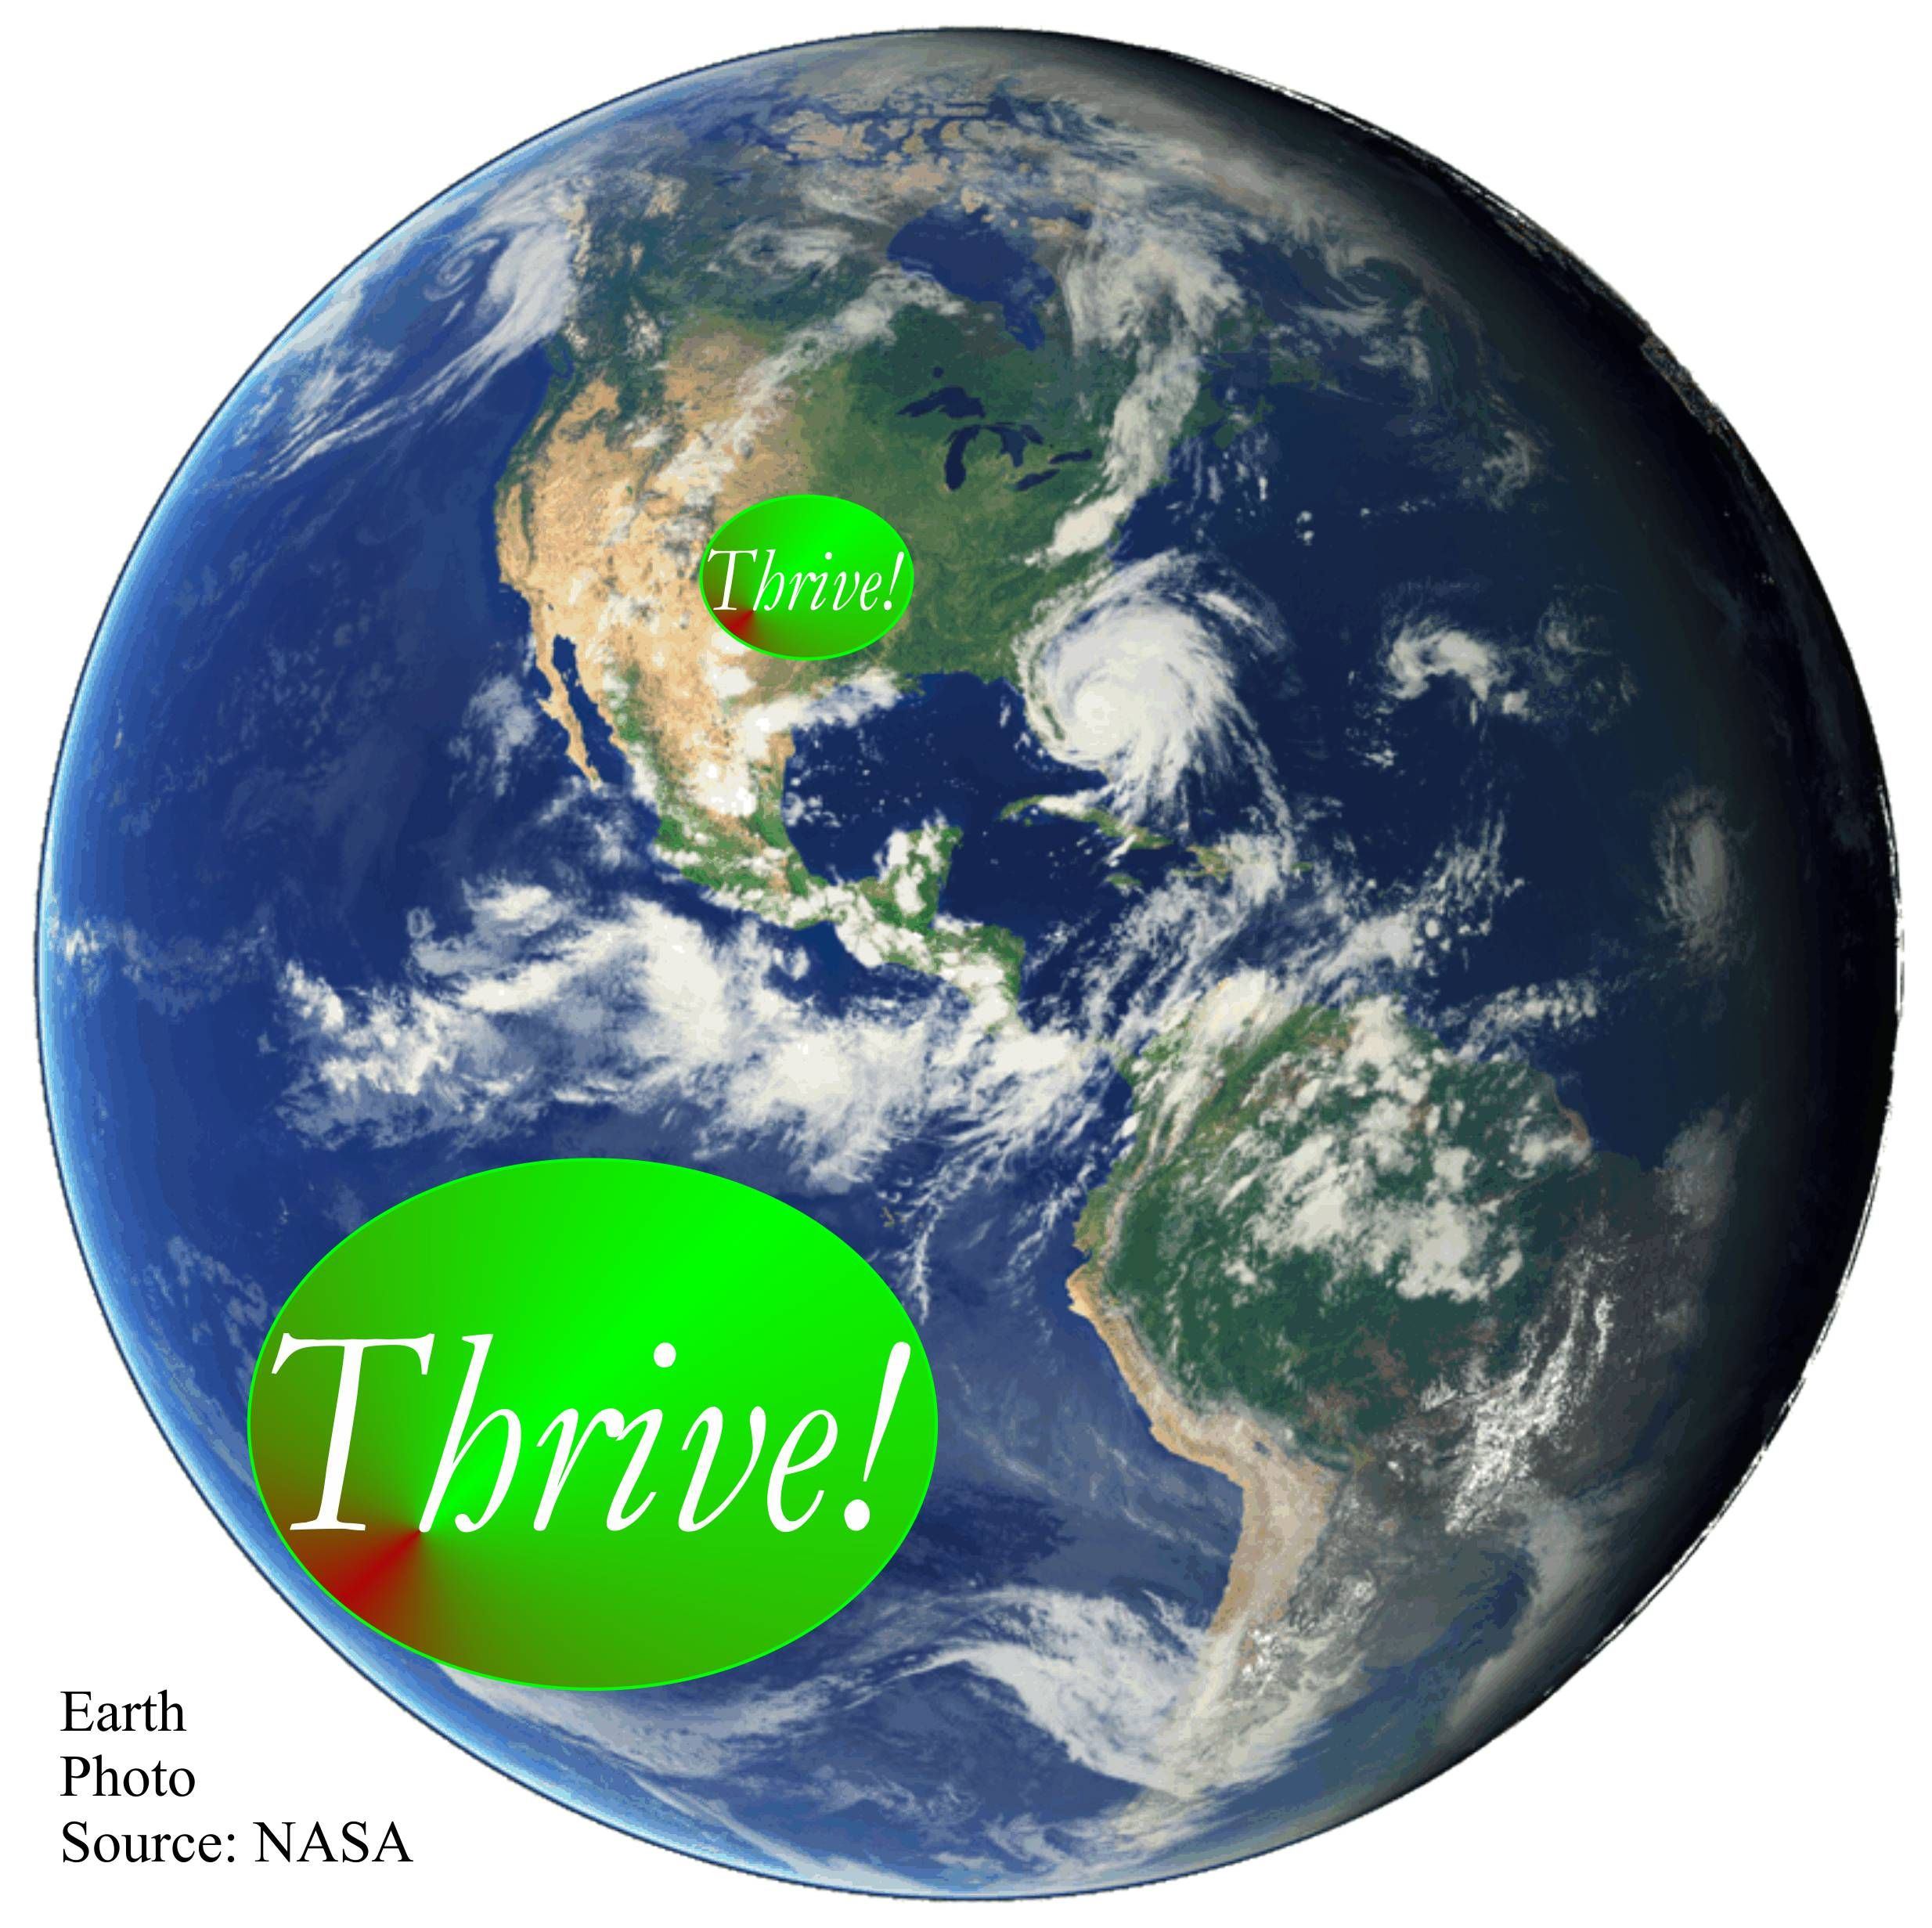 To America's leaders, America thrives, together with, not at the expense of, the rest of Earth. www.AllThriveForever.org  Make America and Earth great!